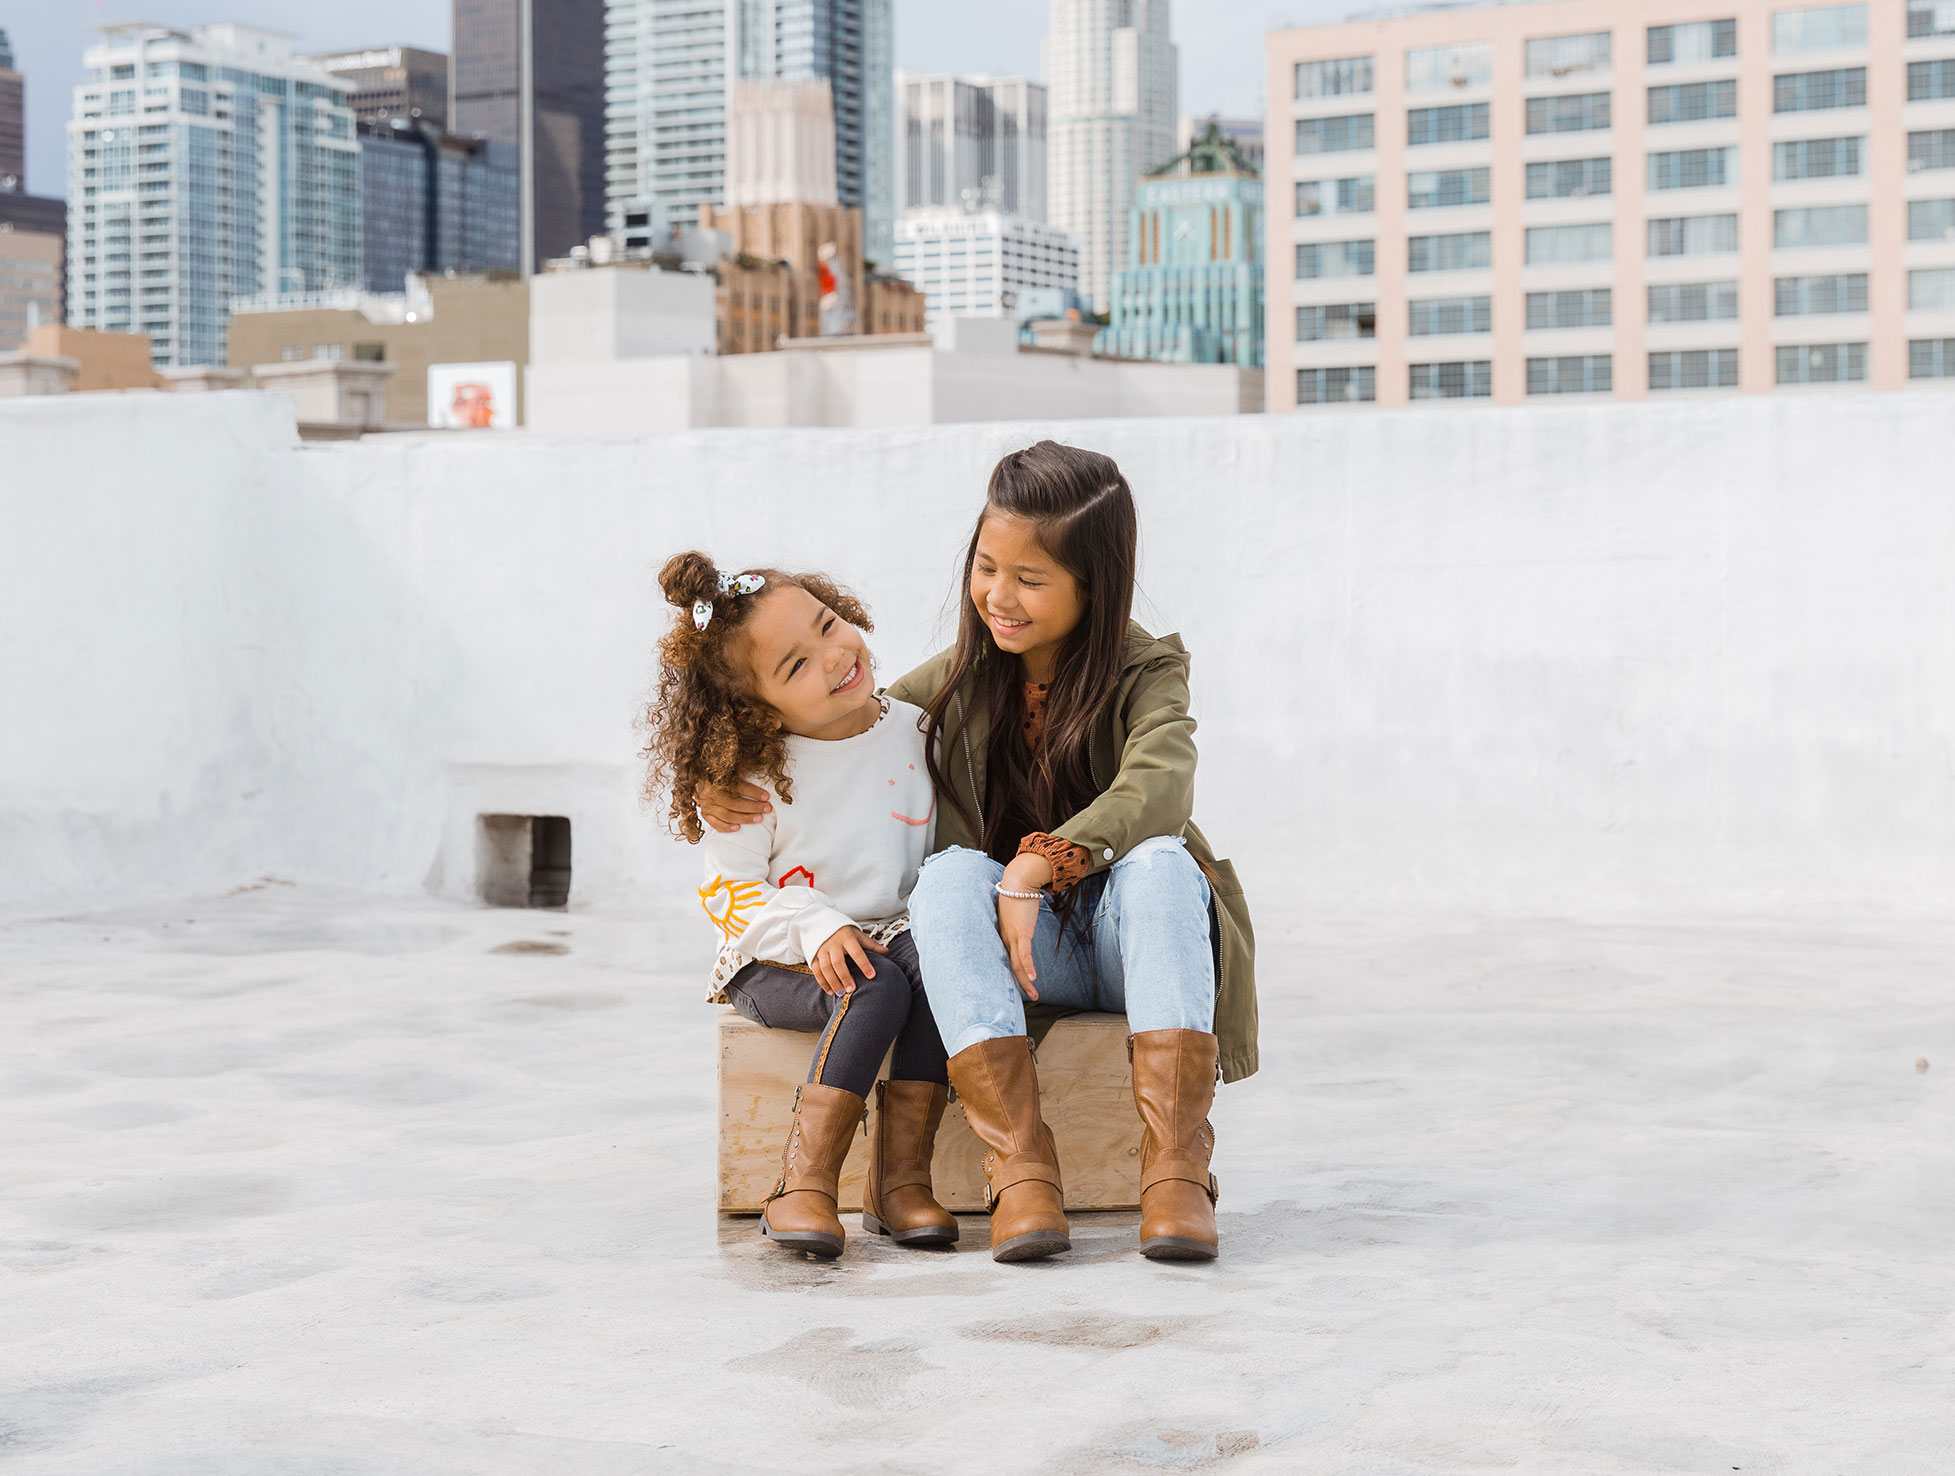 https://blowfishshoes.com/wp-content/uploads/2019/09/Kids-Collection-Header.jpg